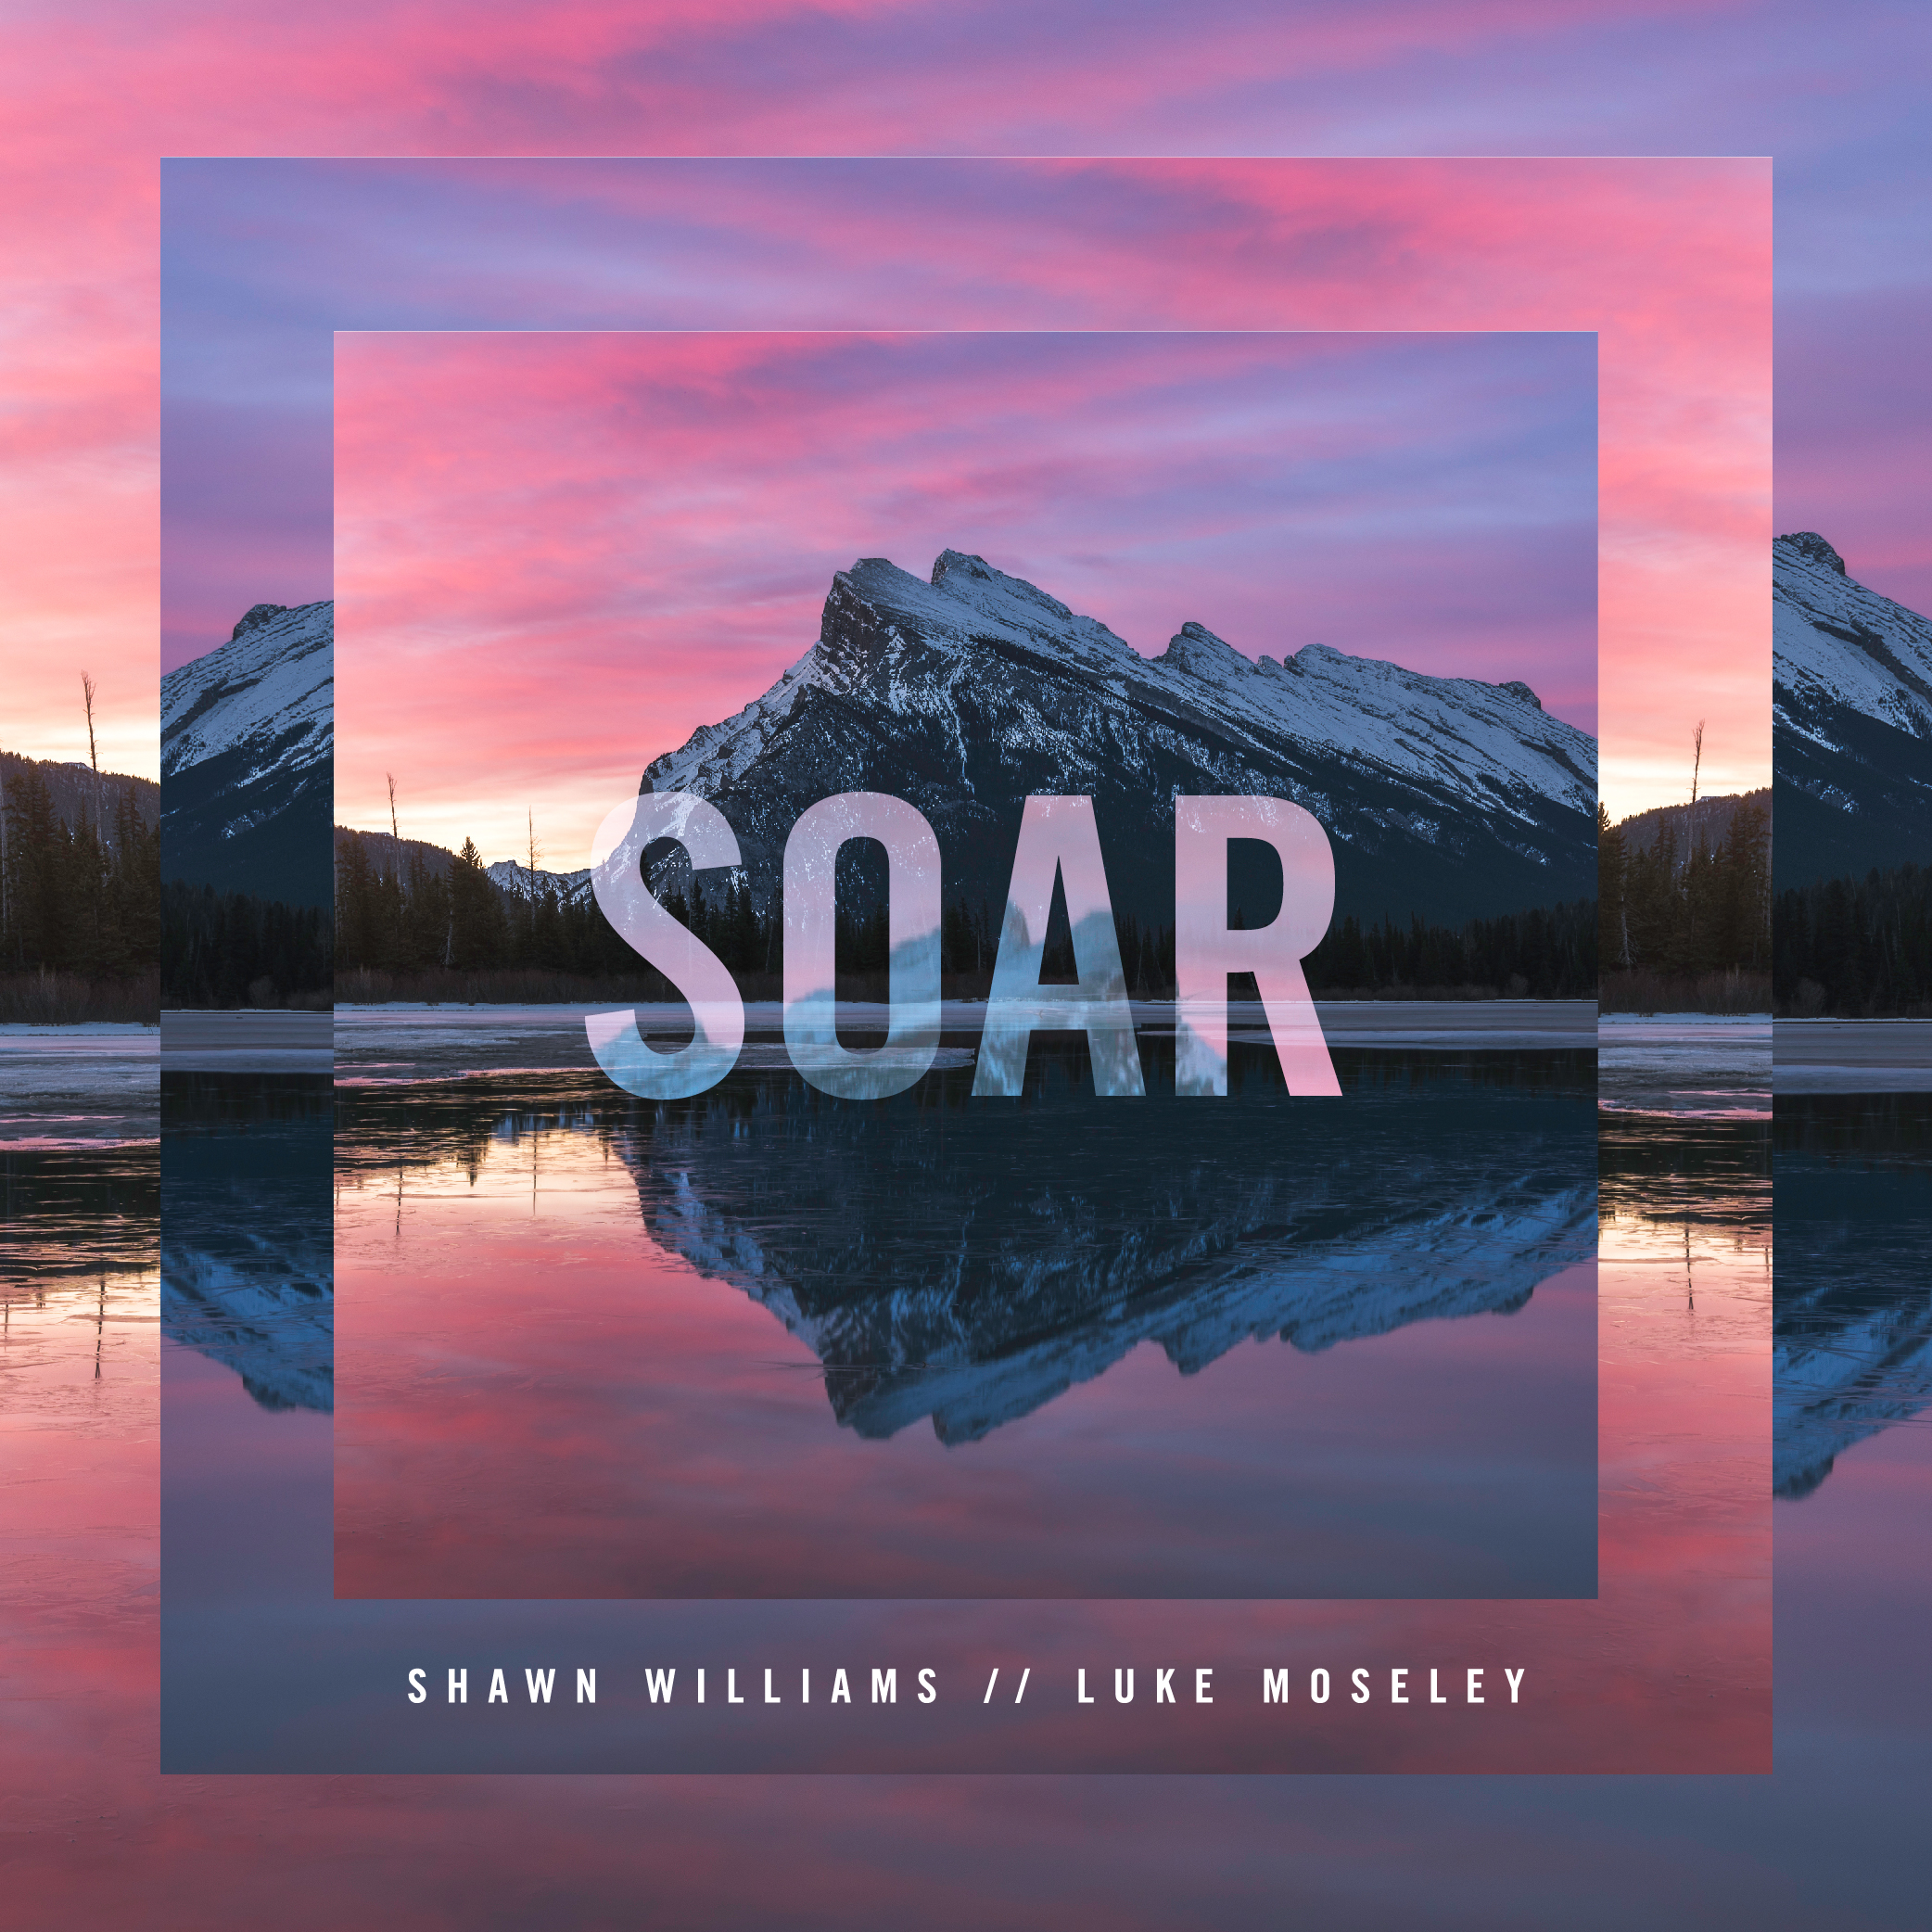 Soar by Luke Moseley and Shawn Williams, film composer